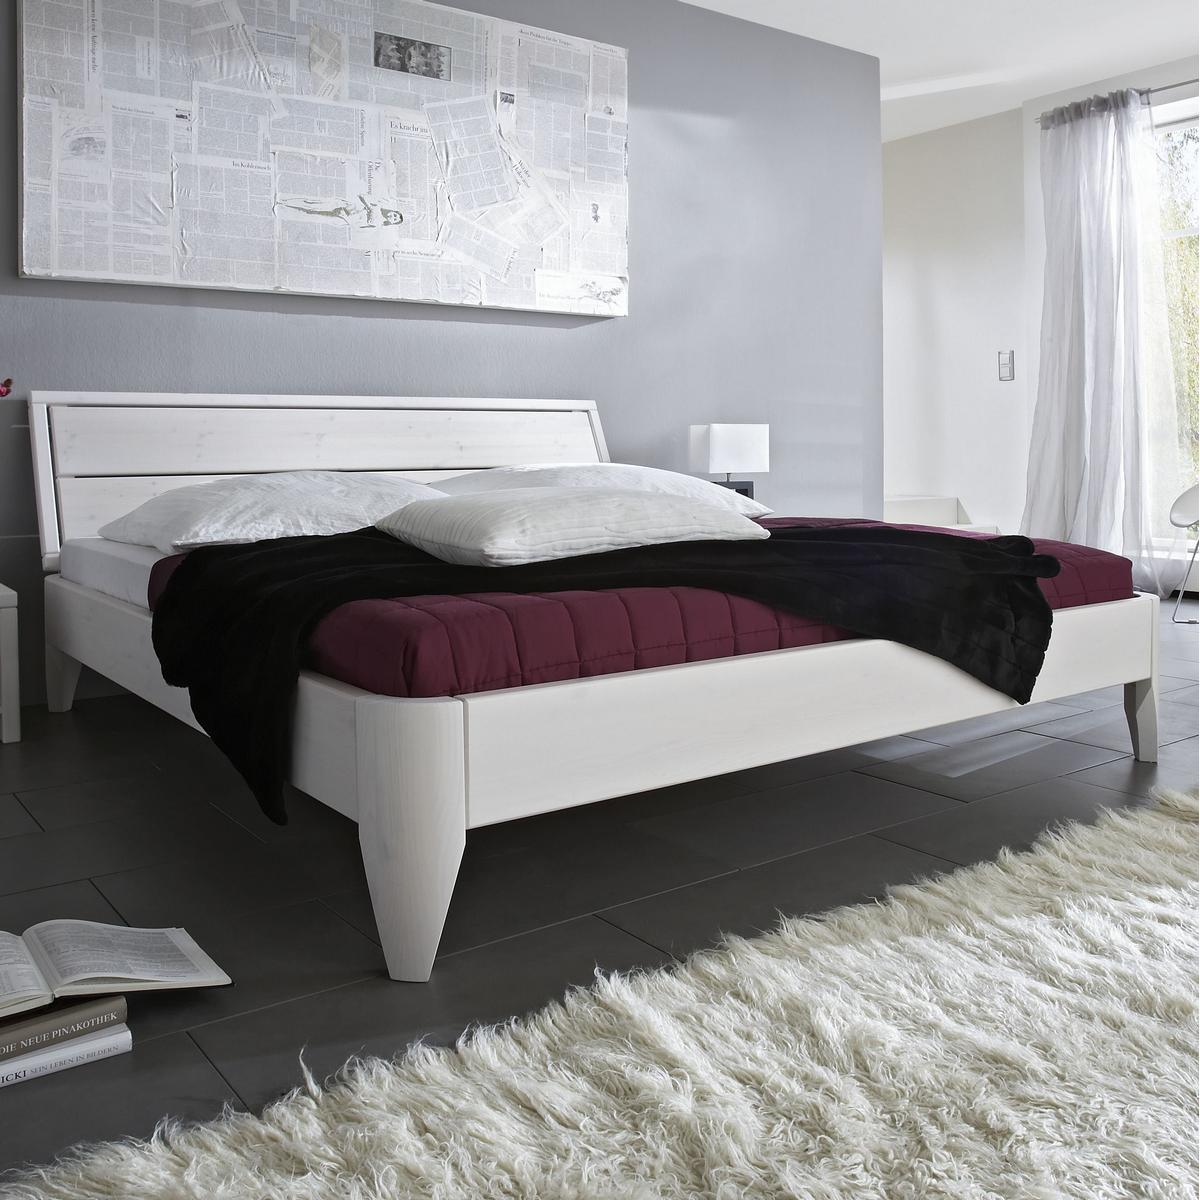 bett kiefer massiv weis die neueste innovation der. Black Bedroom Furniture Sets. Home Design Ideas